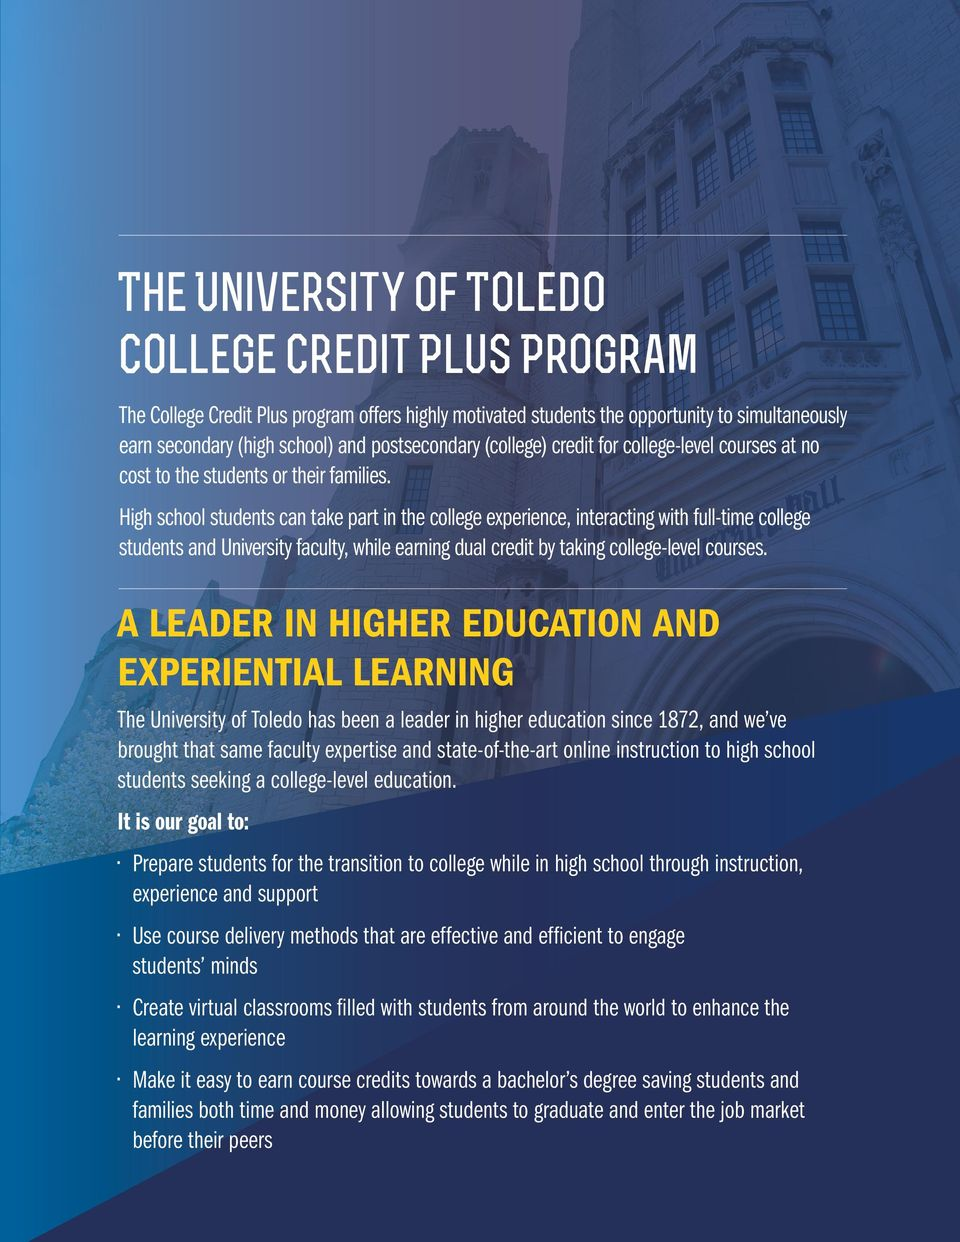 High school students can take part in the college experience, interacting with full-time college students and University faculty, while earning dual credit by taking college-level courses.